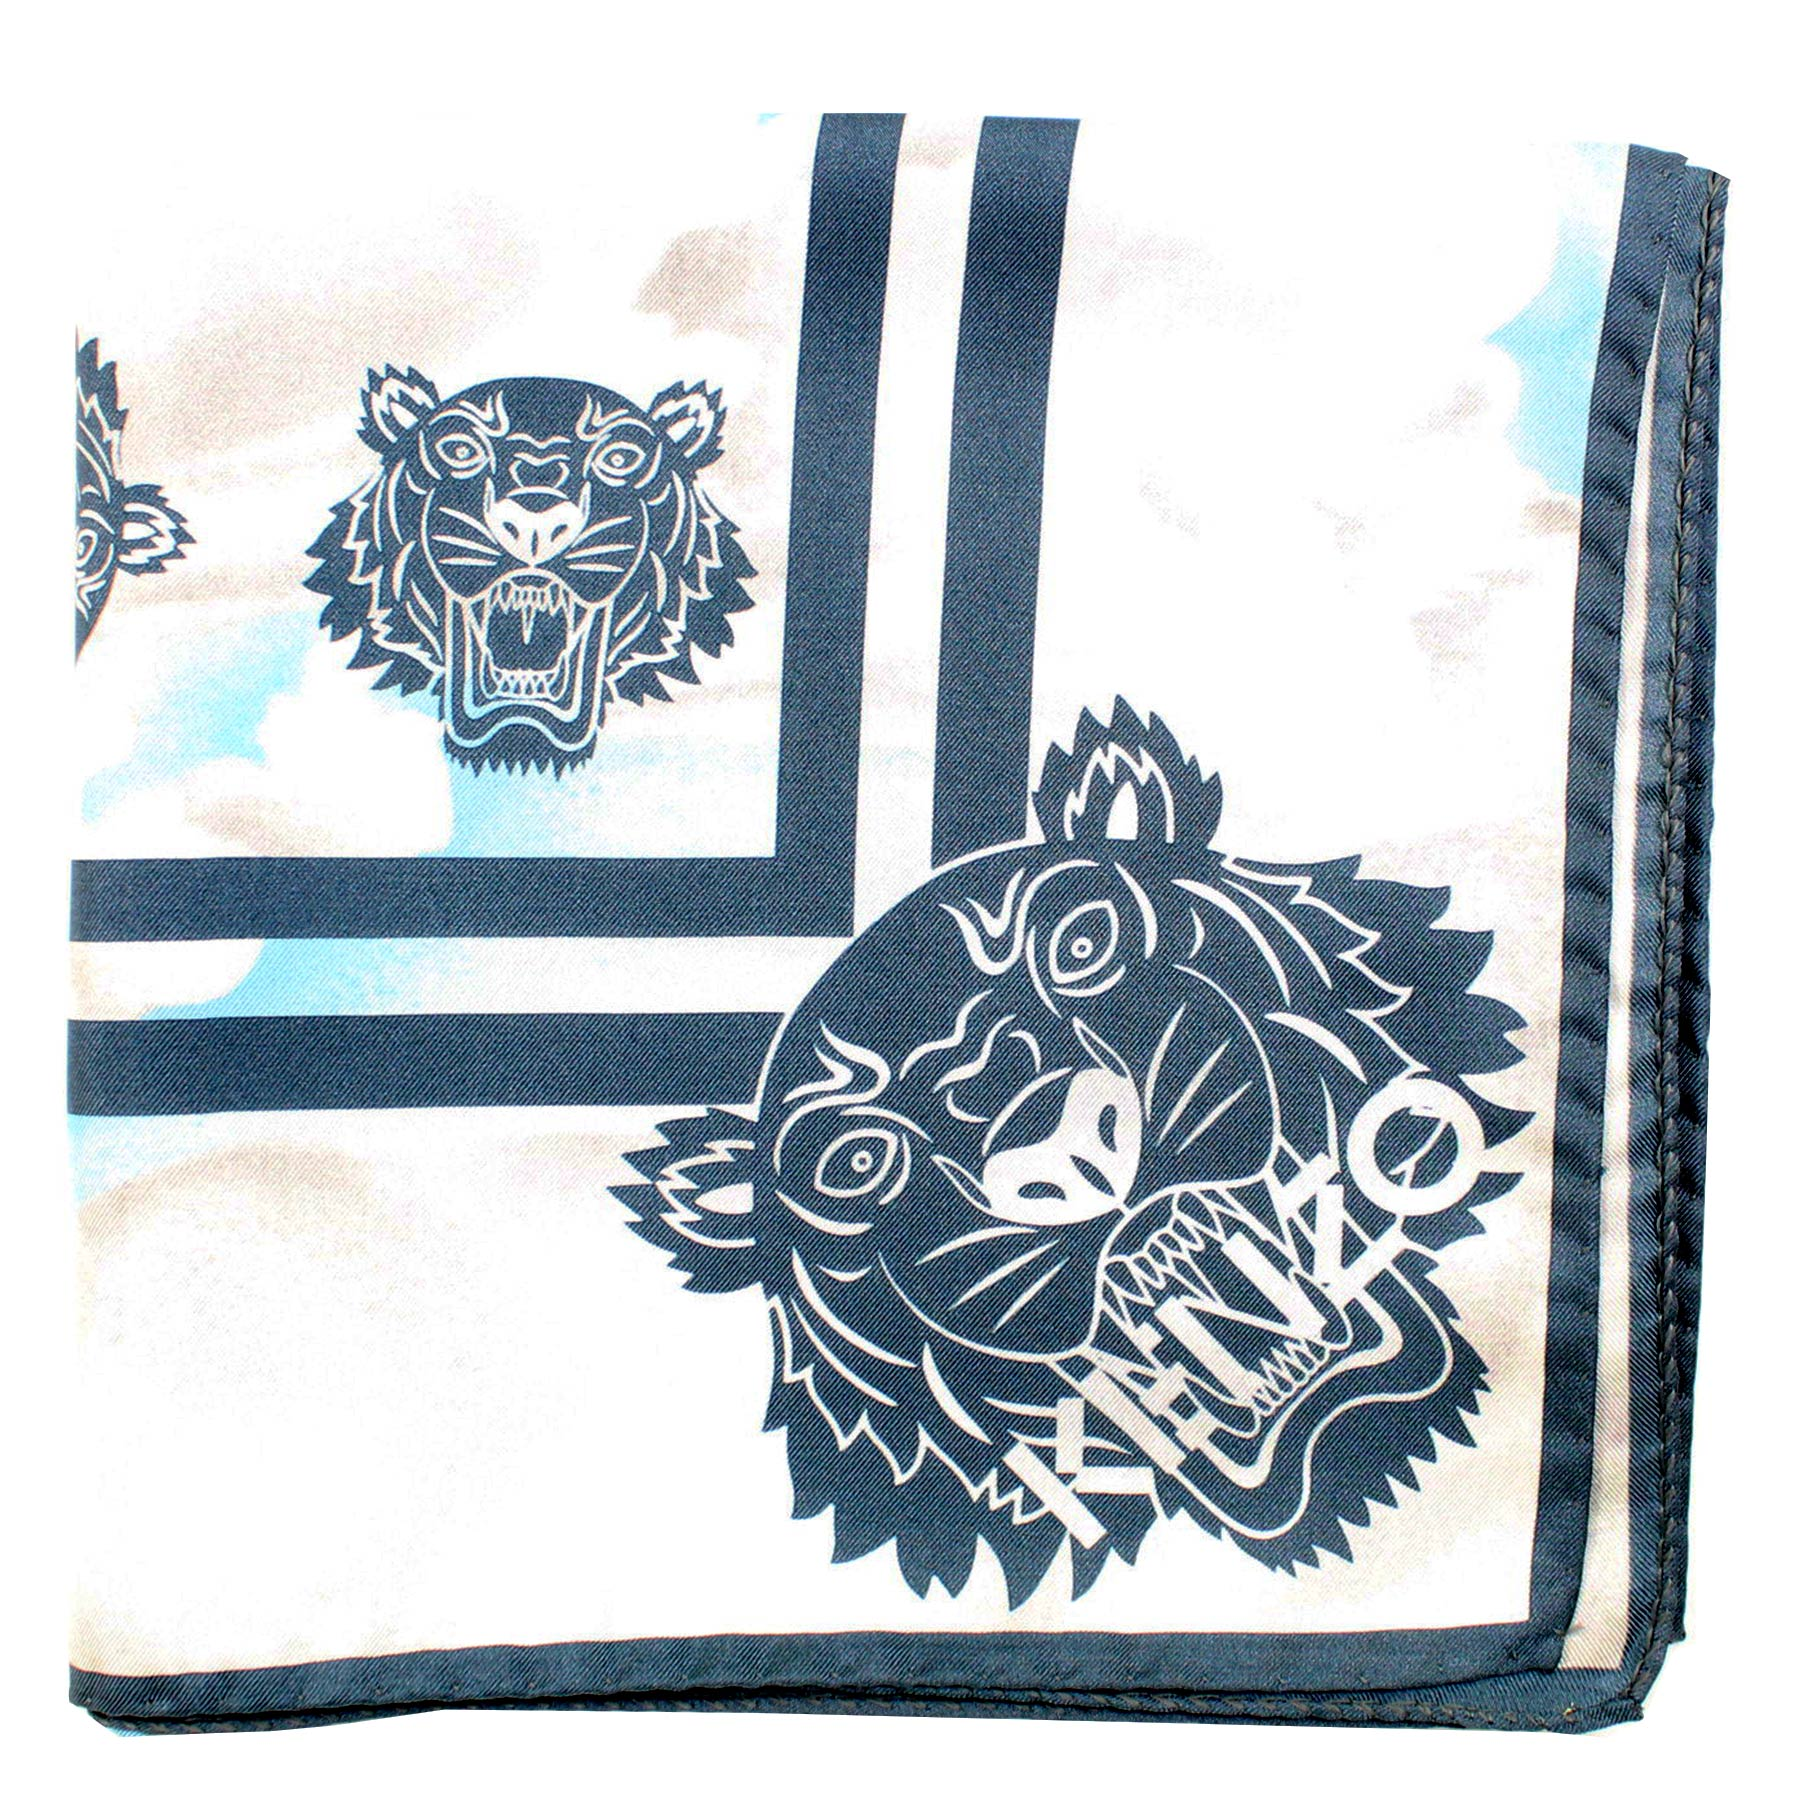 Kenzo Scarf Sky Blue Clouds Tigers - Large Twill Silk Square Scarf